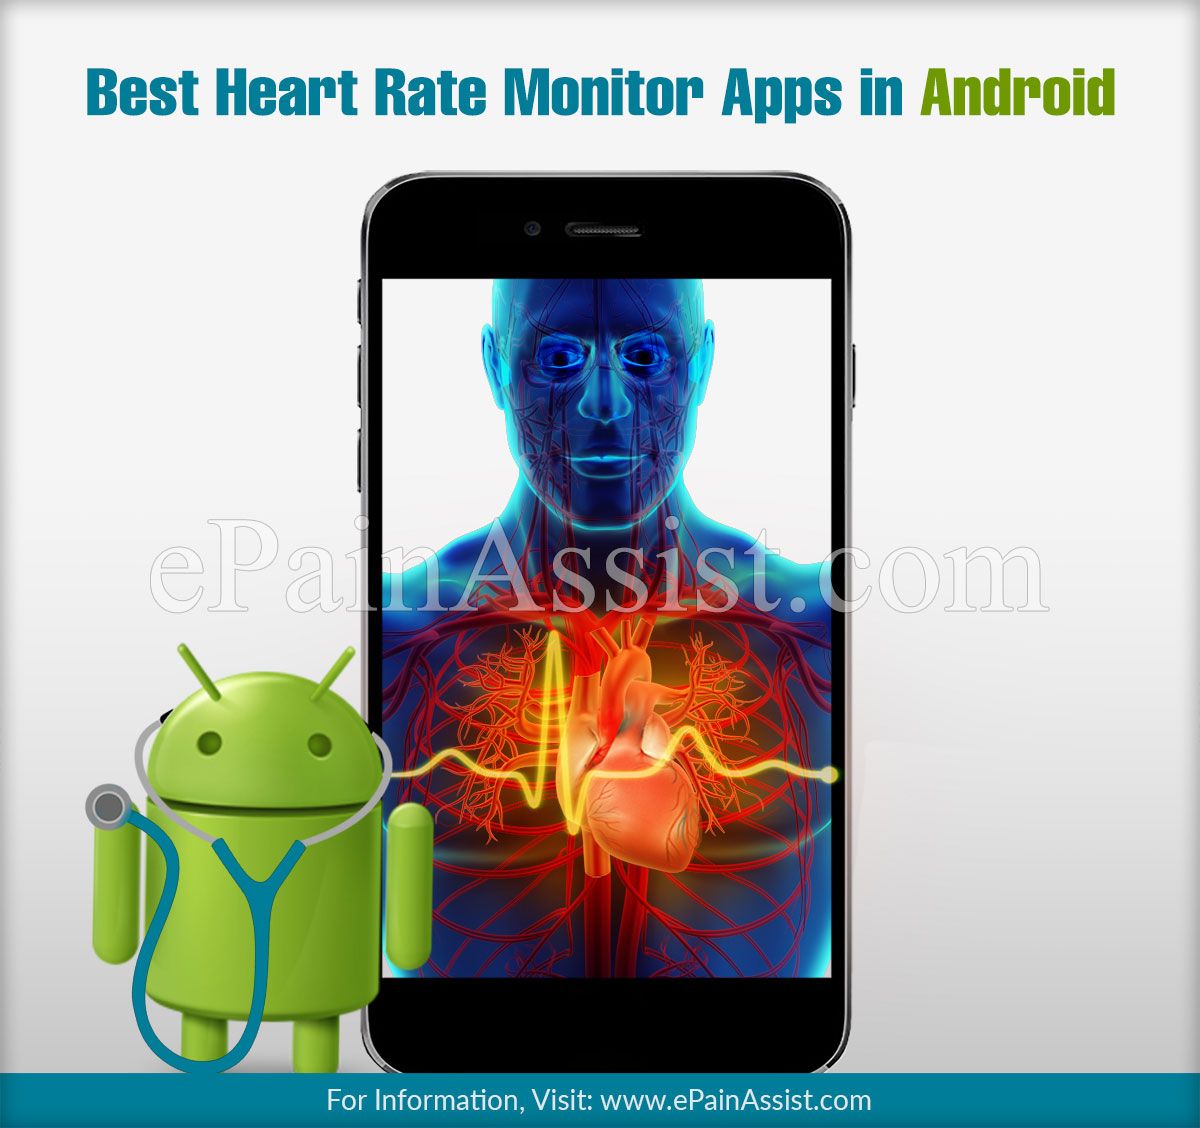 Best Heart Rate Monitor Apps in Android